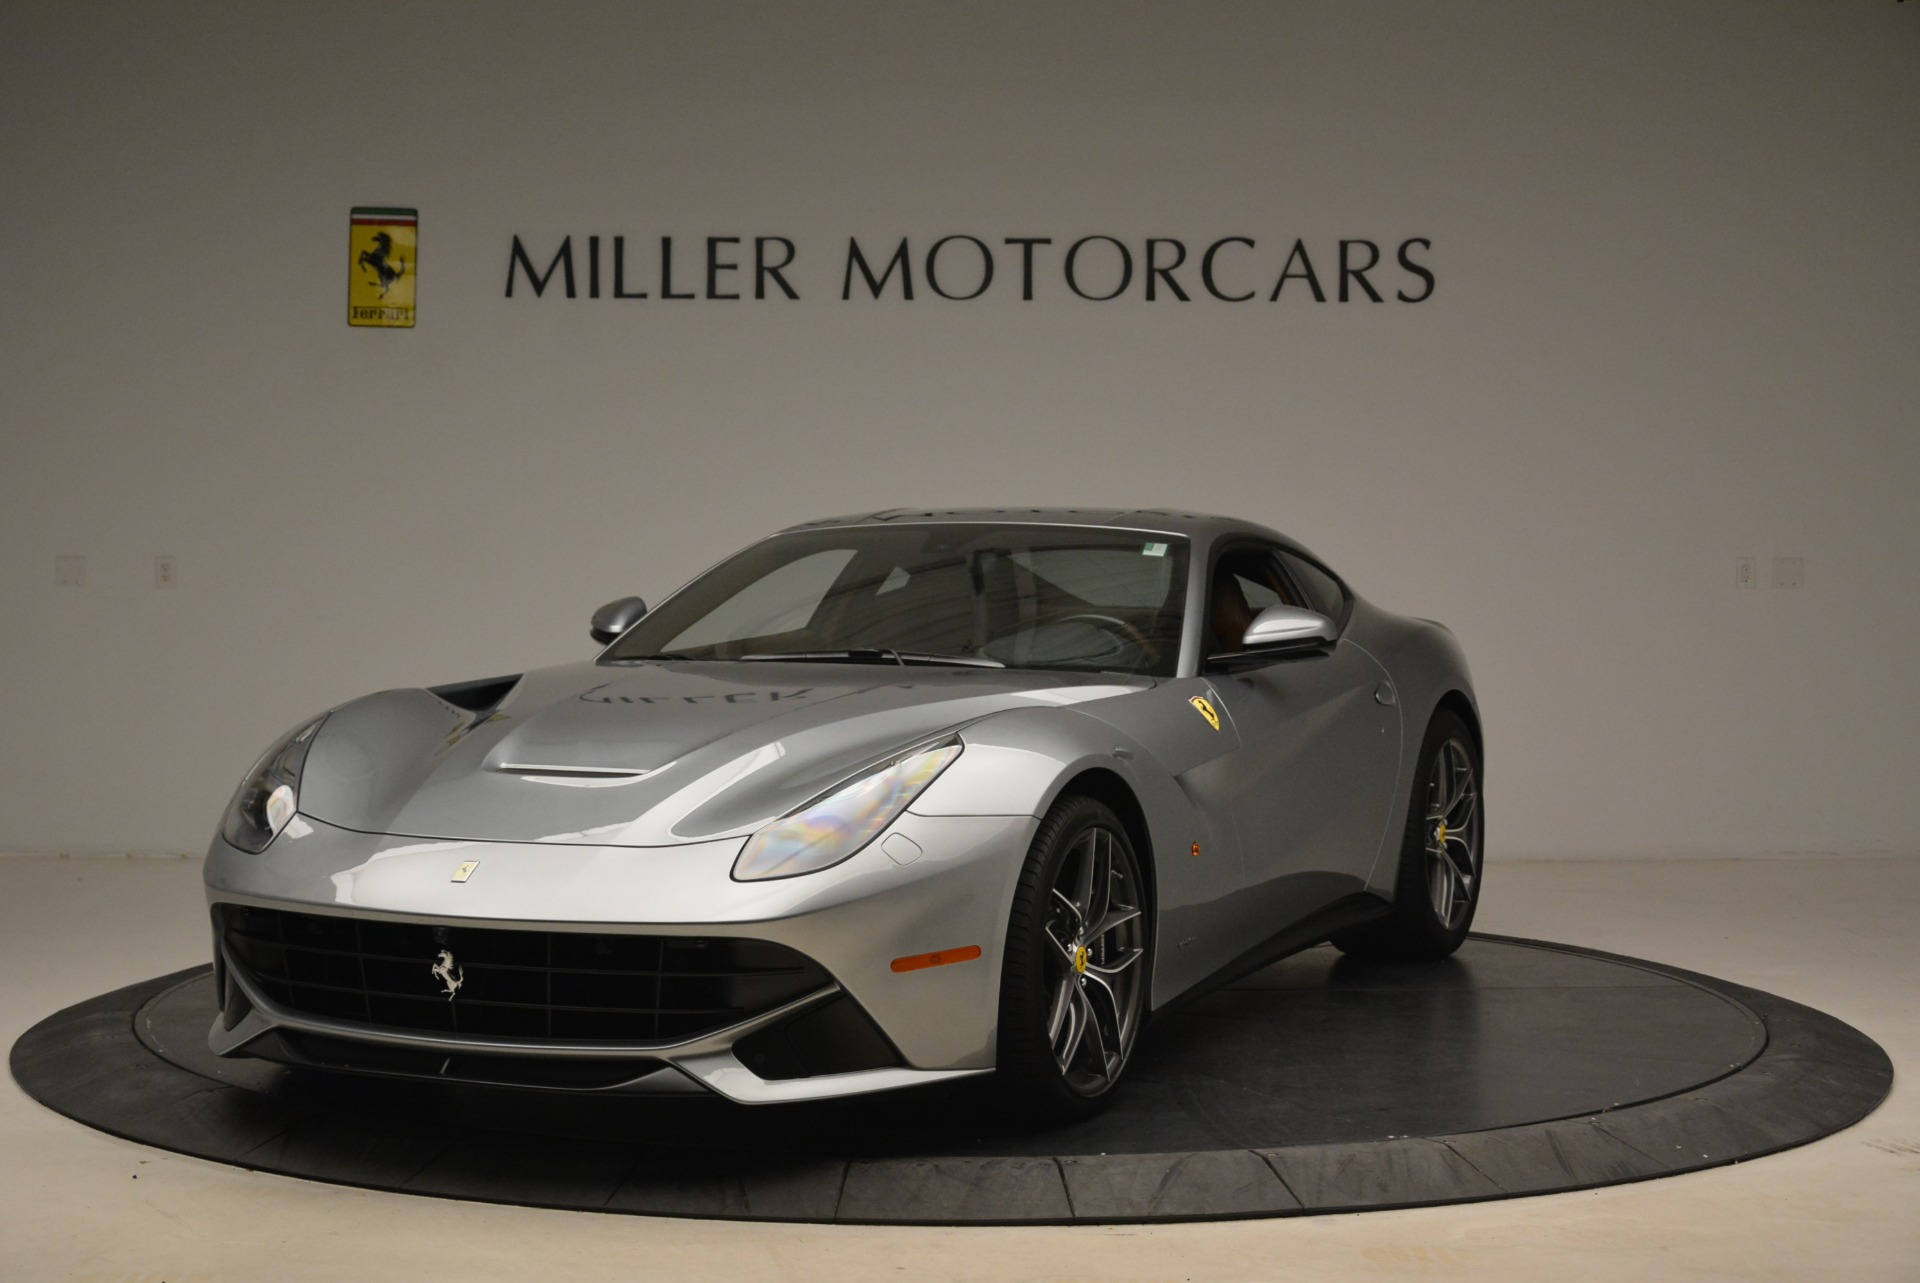 2017 F12 Berlinetta Back Wiring Diagrams Electronics Schematic Diagram Max2247 24ghz Sige Linear Power Amplifier Ferrari Stock 4464 For Sale Near Greenwich Ct Rh Millermotorcars Com 2018